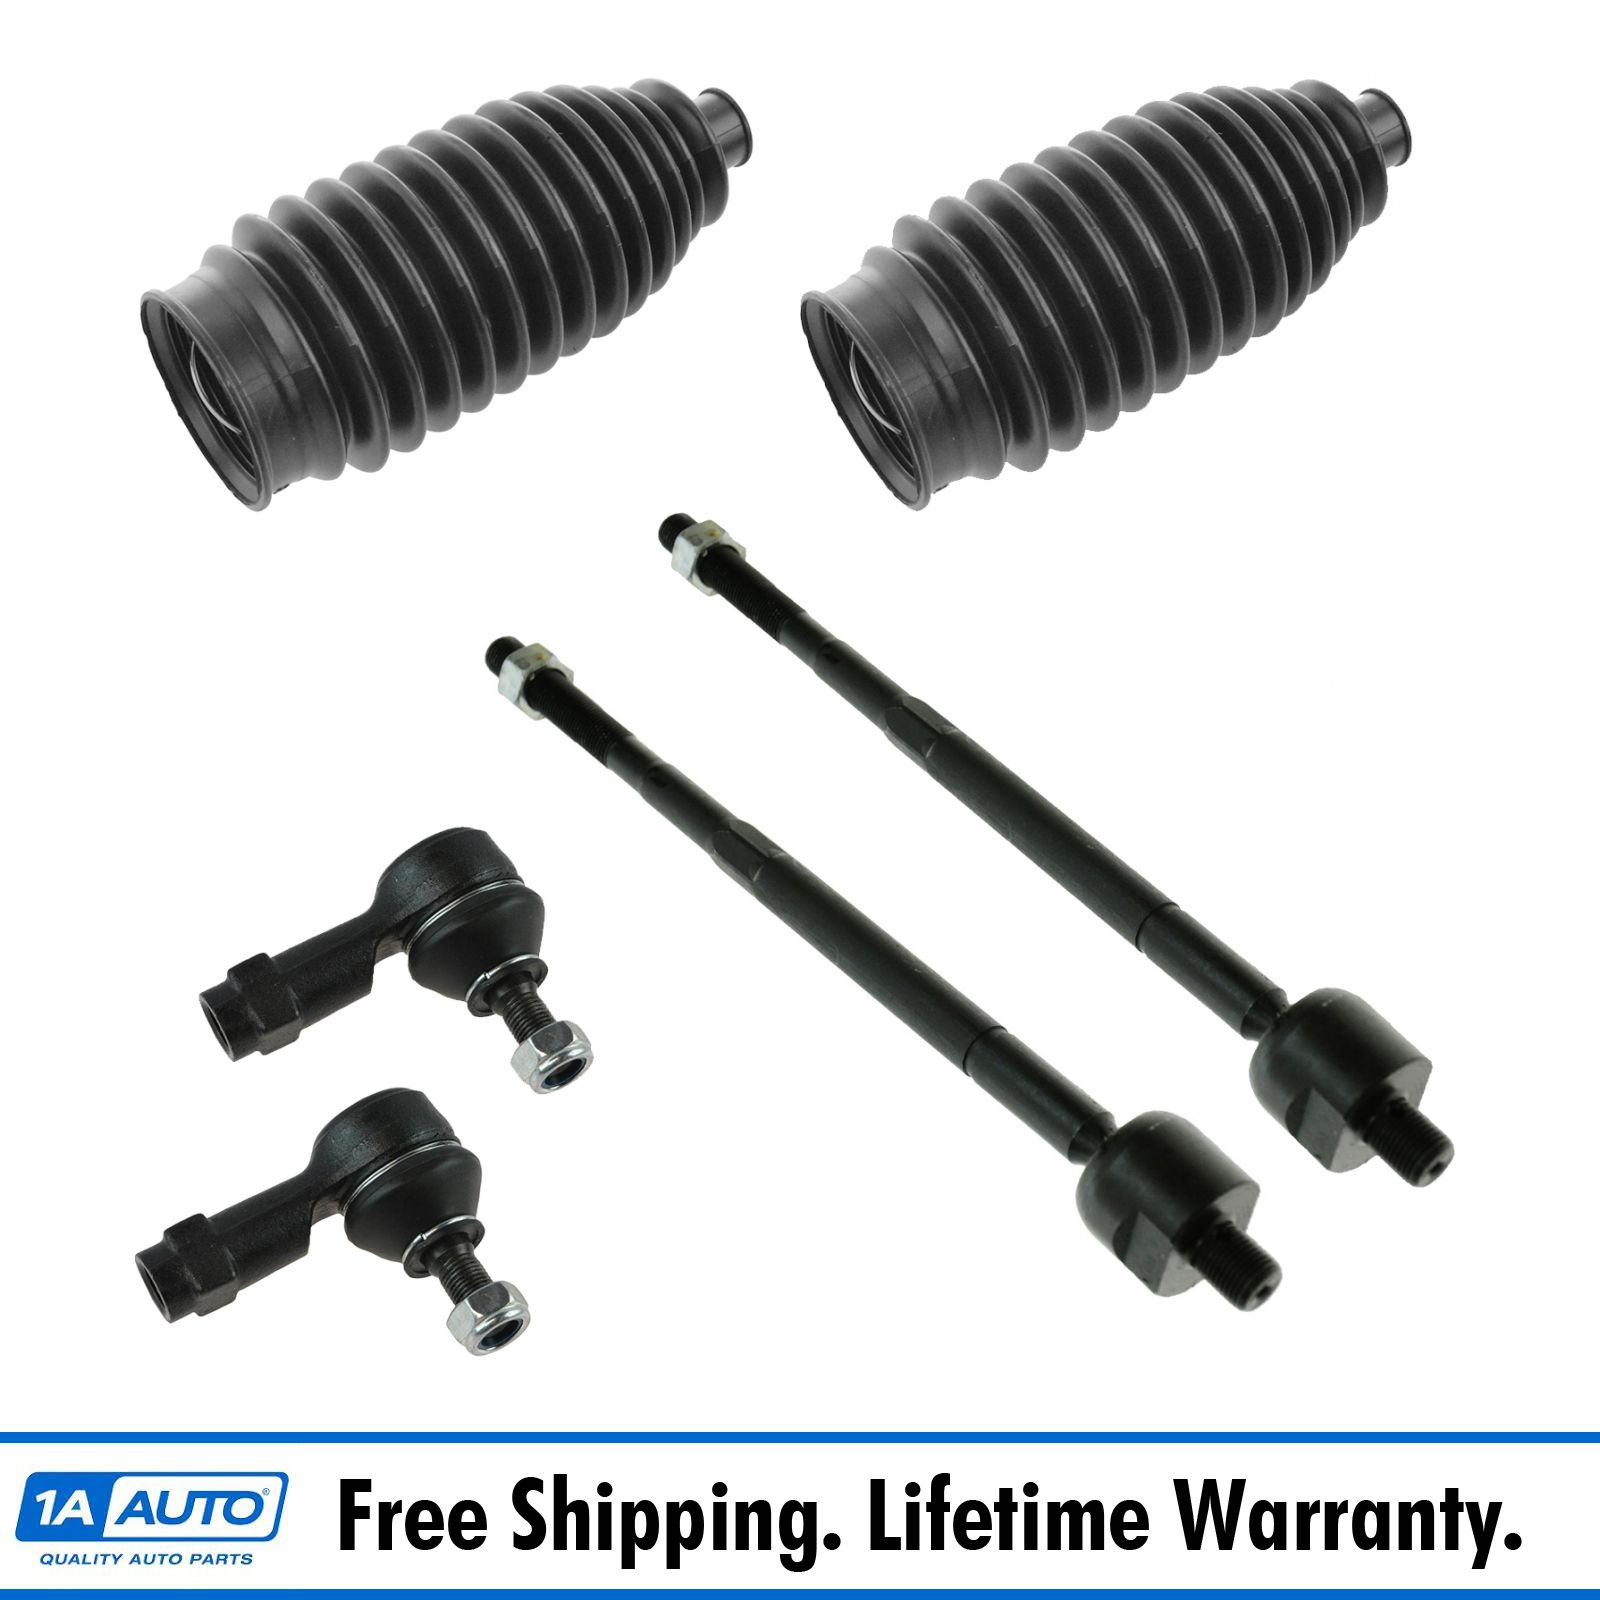 PartsW 6 Pieces Steering Kit 2 Rack and Pinion Bellow Boot 2 Outer Tie Rod Ends 2 Inner